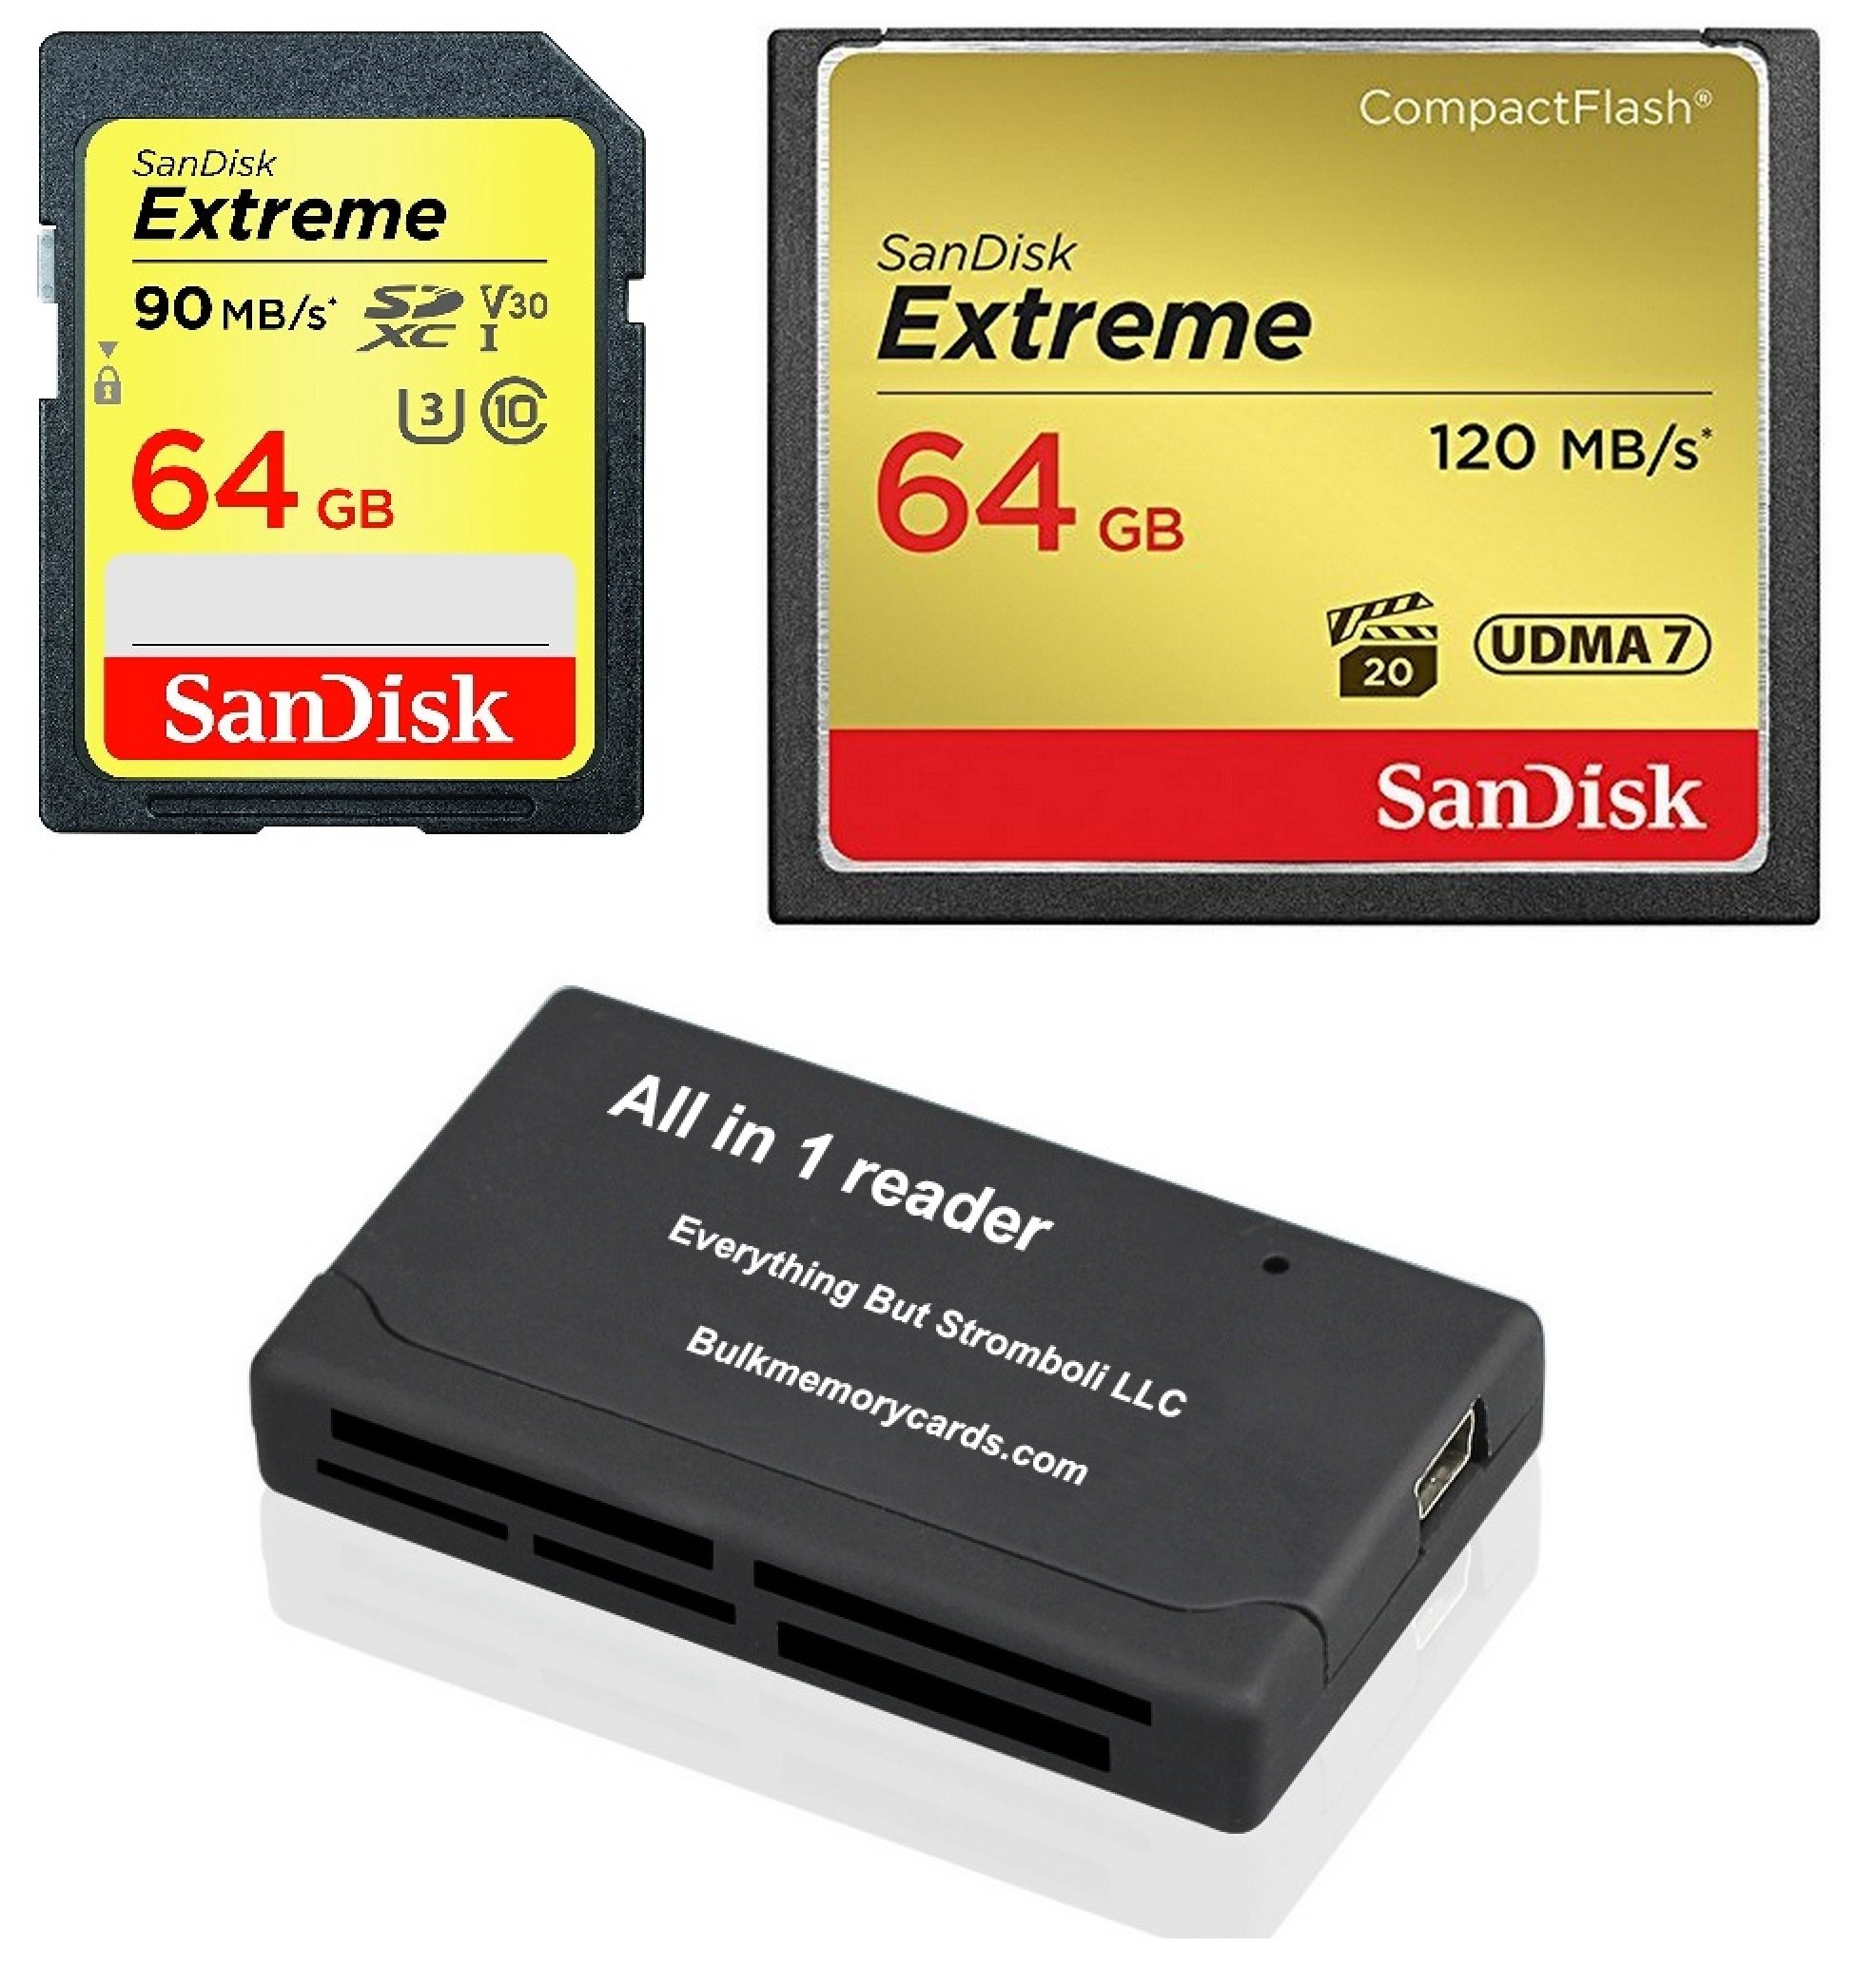 SanDisk CompactFlash Extreme 64GB CF Memory Card (SDCFXSB-064G-G46) and 64GB SDHC Extreme (SDSDXVE-064G-GNCIN) for Canon 5D Mark III, 1D Mark IV Cameras with Everything But Stromboli (TM) Combo Reader